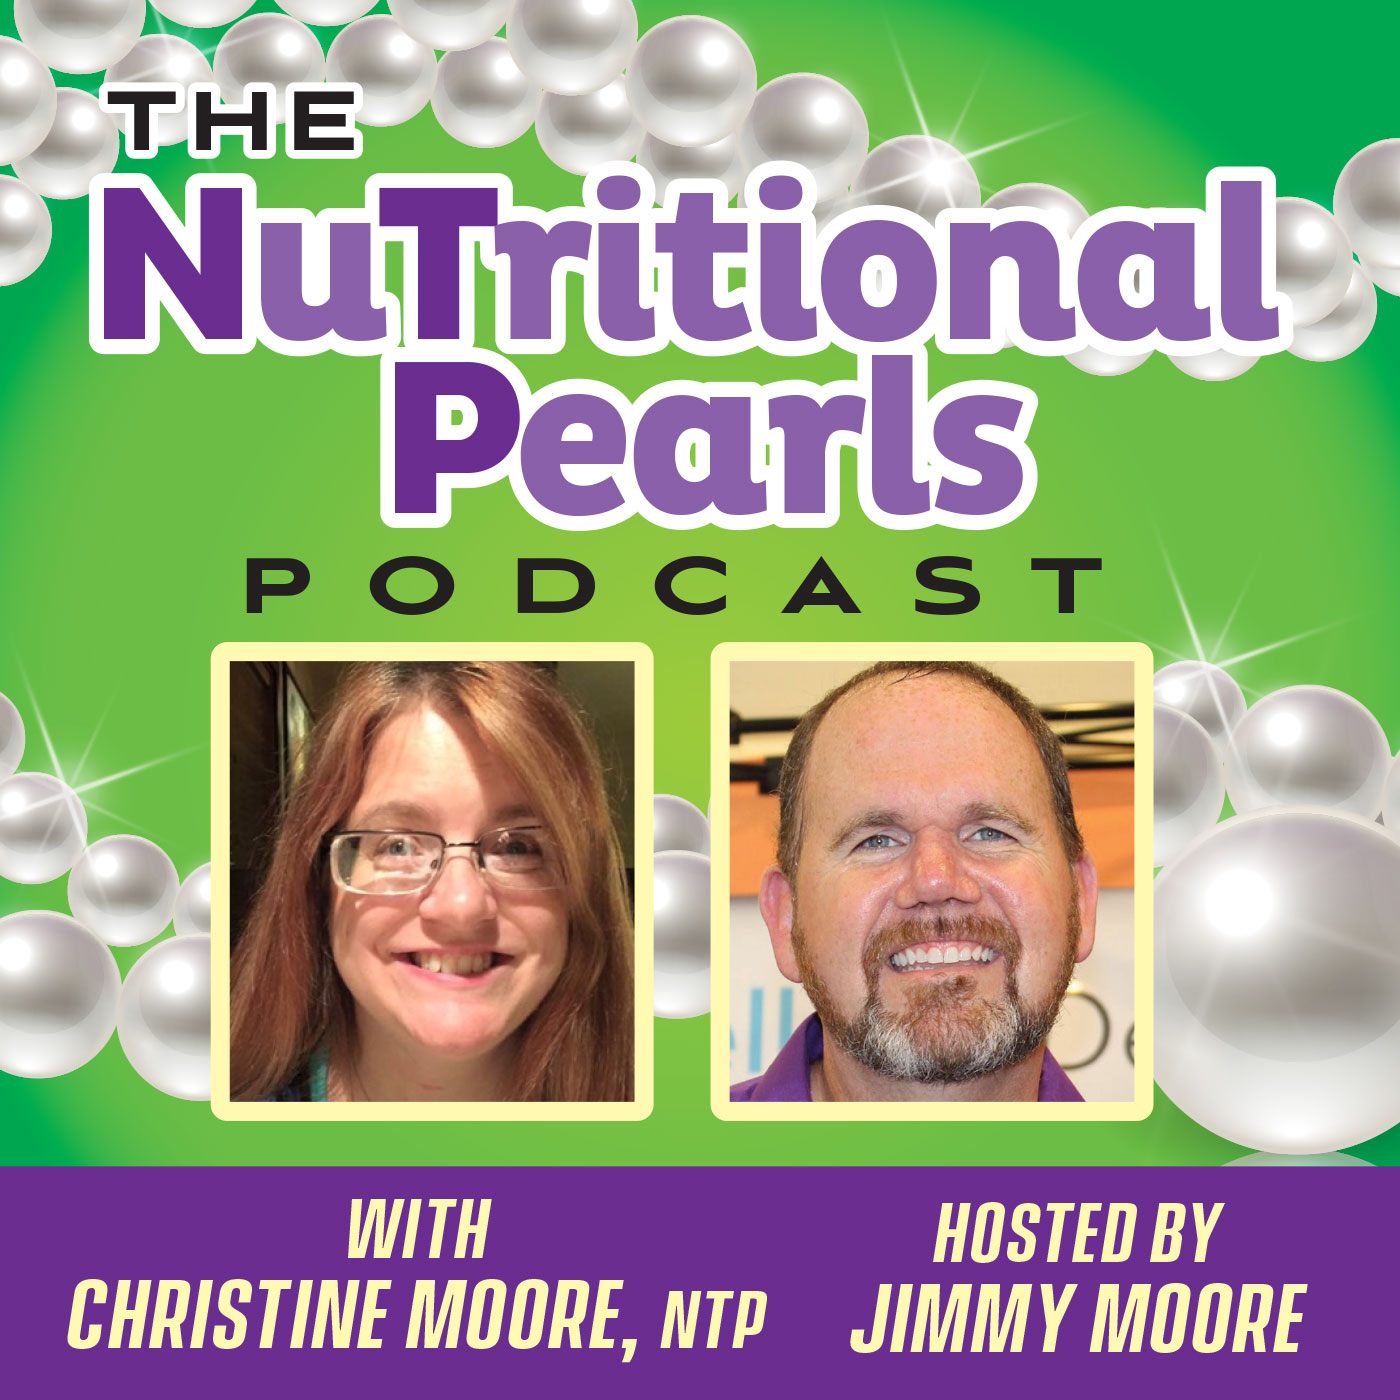 The NuTritional Pearls Podcast show art